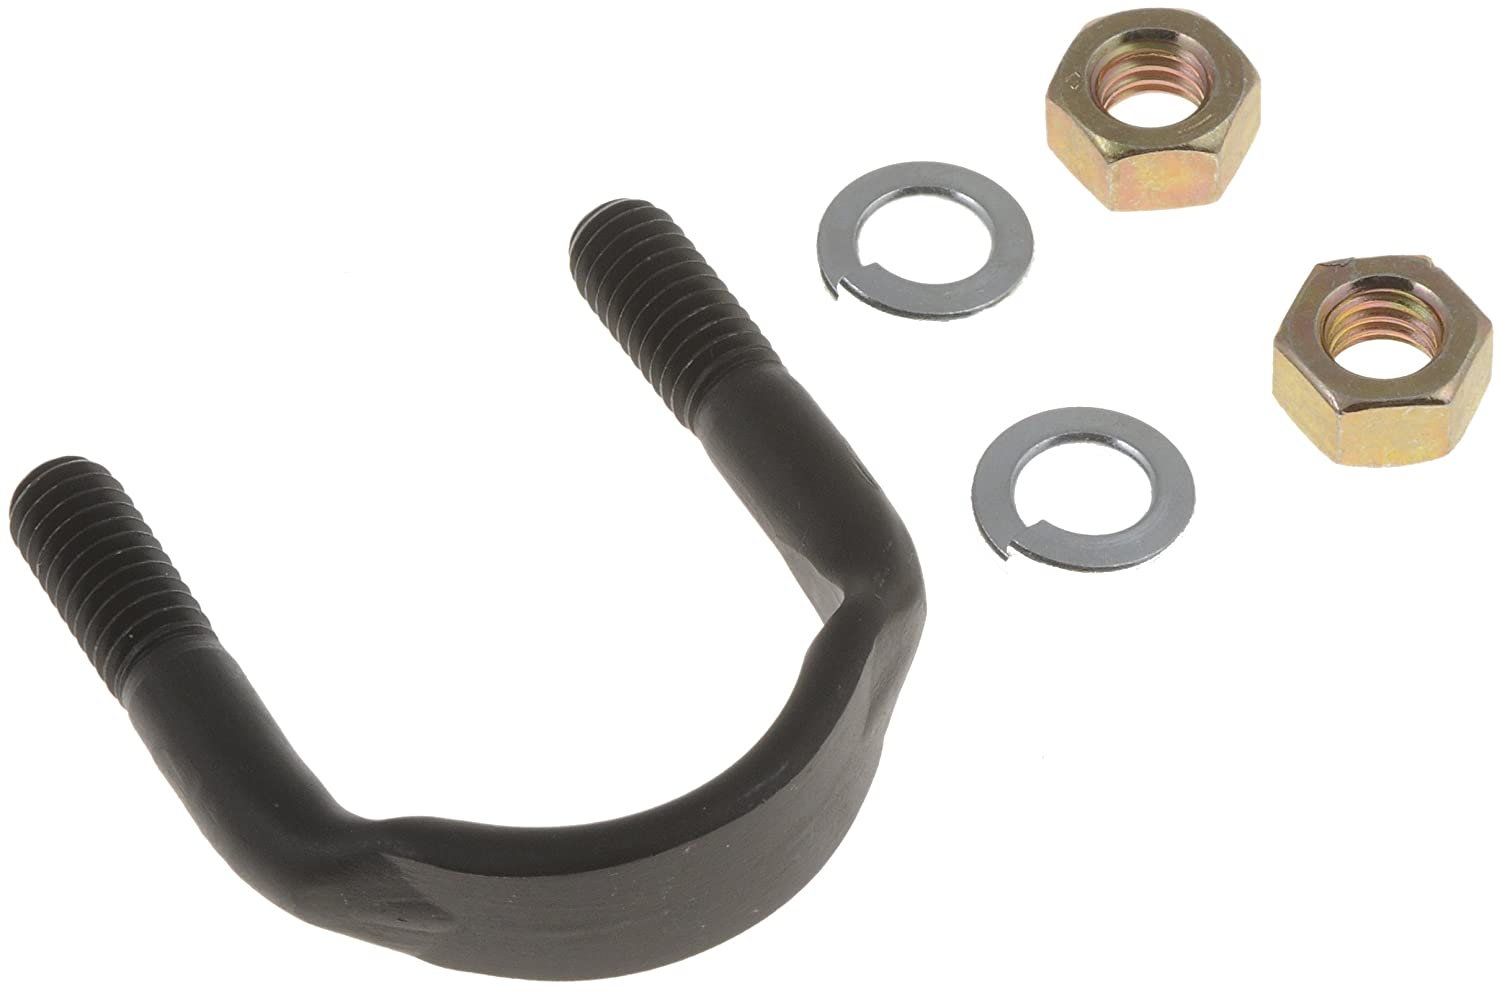 Dorman HELP! 81004 U-Joint Repair Kit Dorman - HELP DOR81004